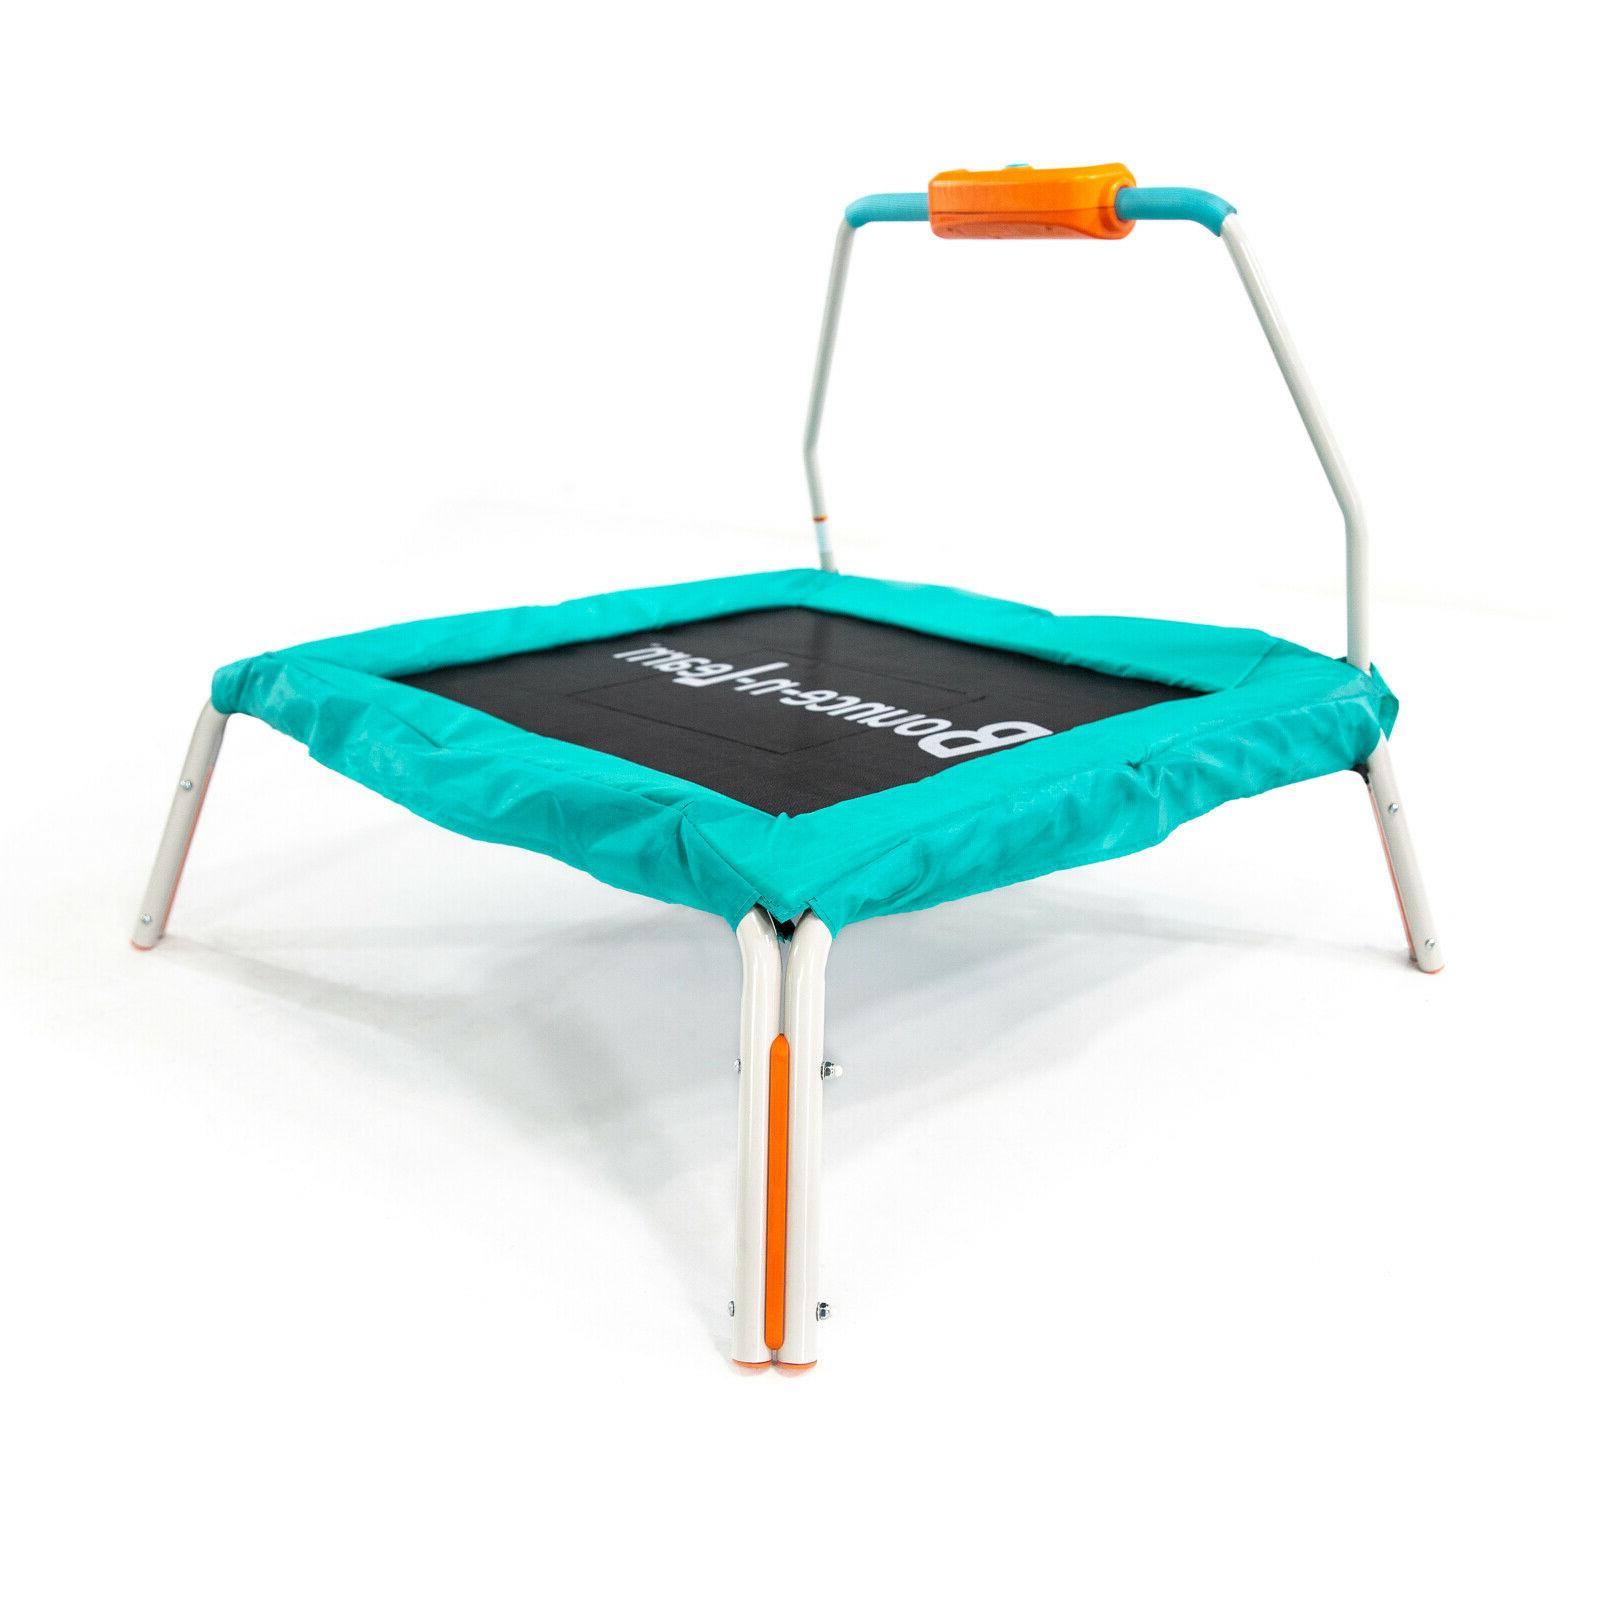 Skywalker Trampolines Square Language Bouncer Fun NEW